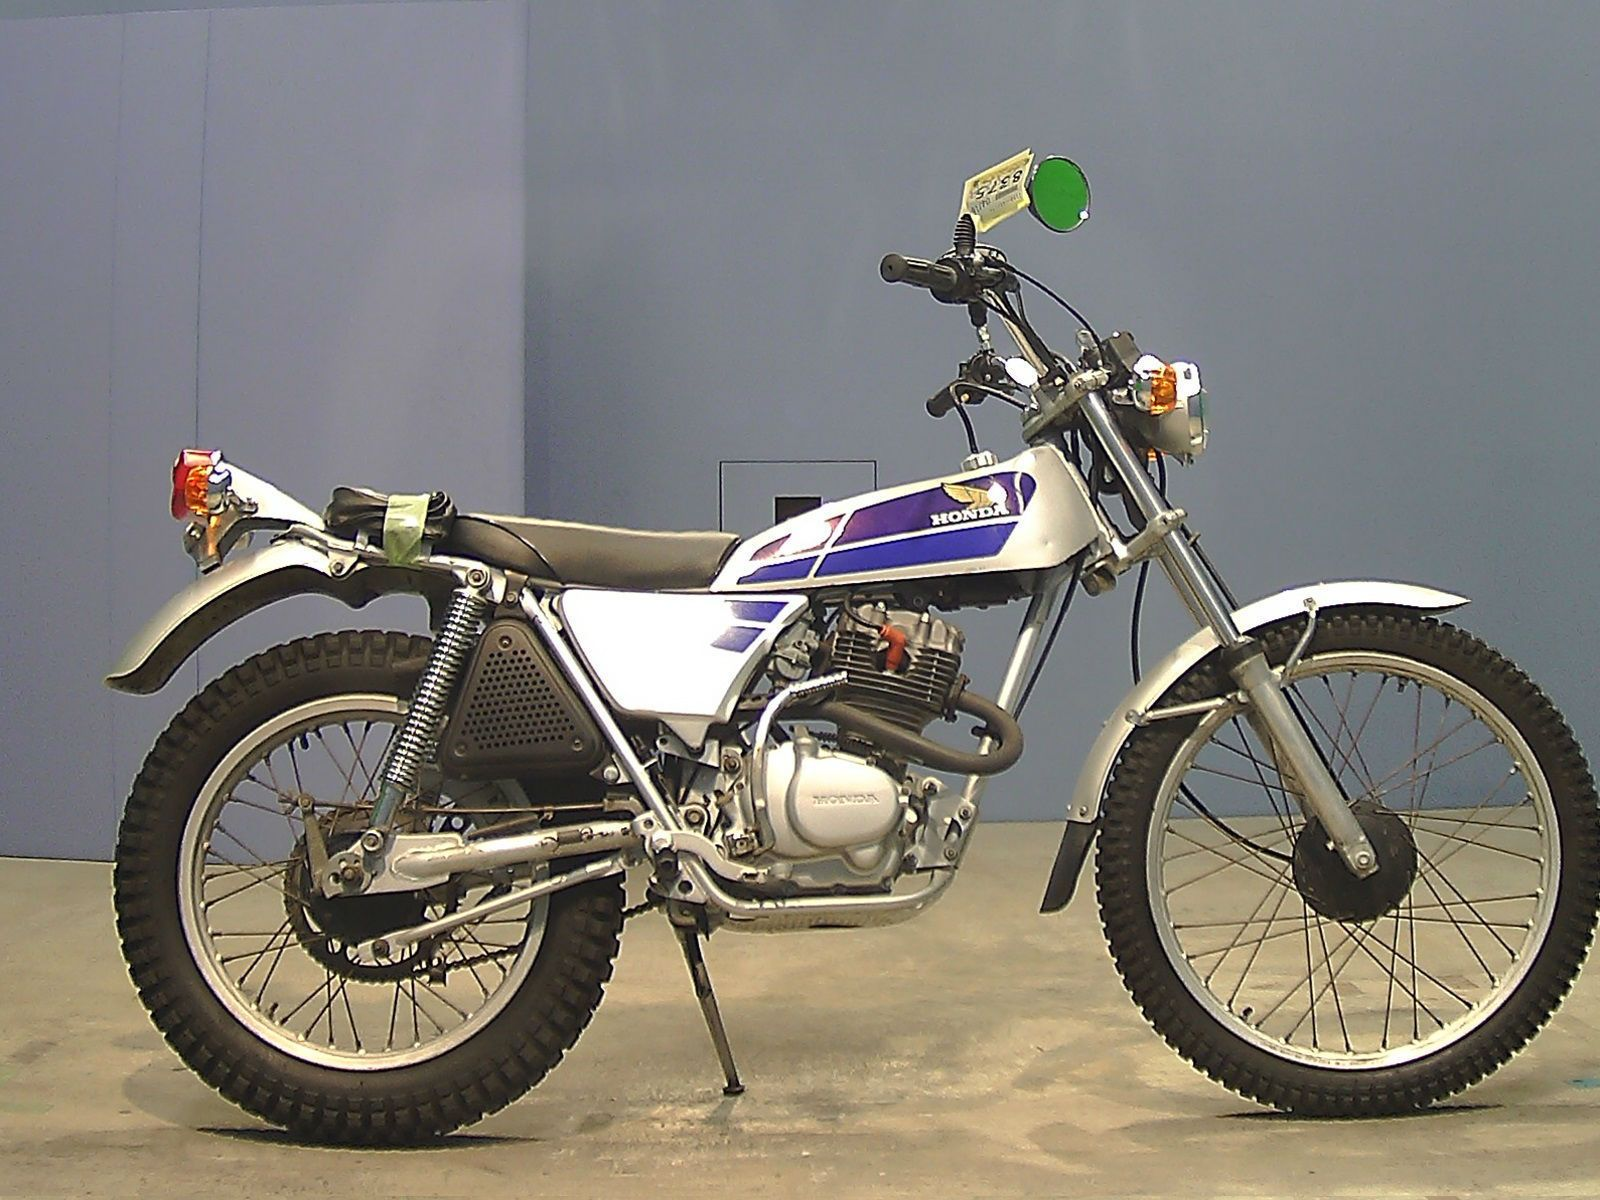 Honda Tl 125 Trial Road Legal Ebay Enduro Vintage 1970 Dirt Bike